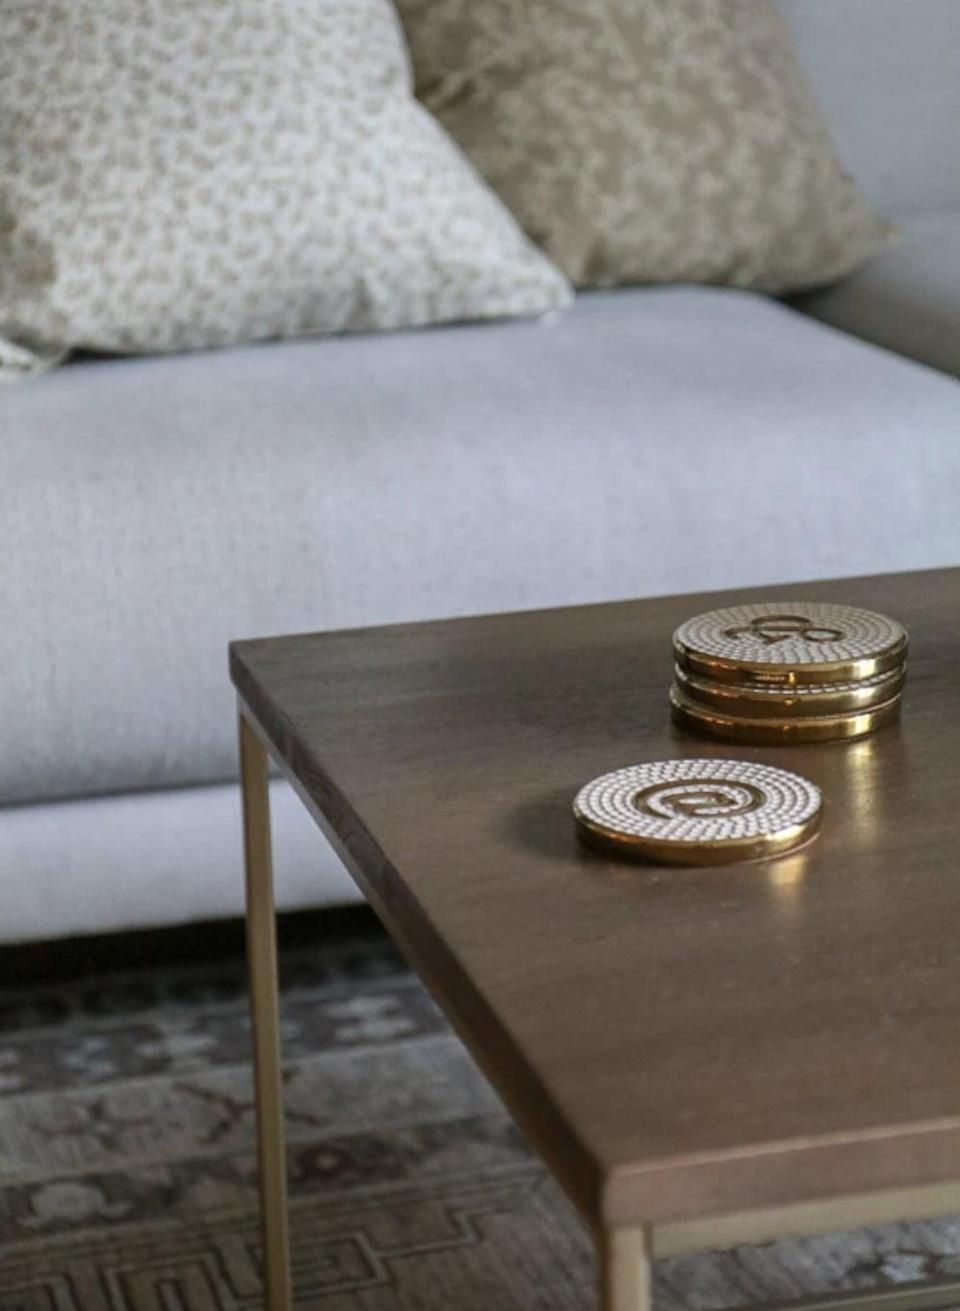 <p>These <span>Effortless Composition Gold and White Social Coasters</span> ($25 for four) are too cute. They are the perfect gift for someone who loves home decor.</p>